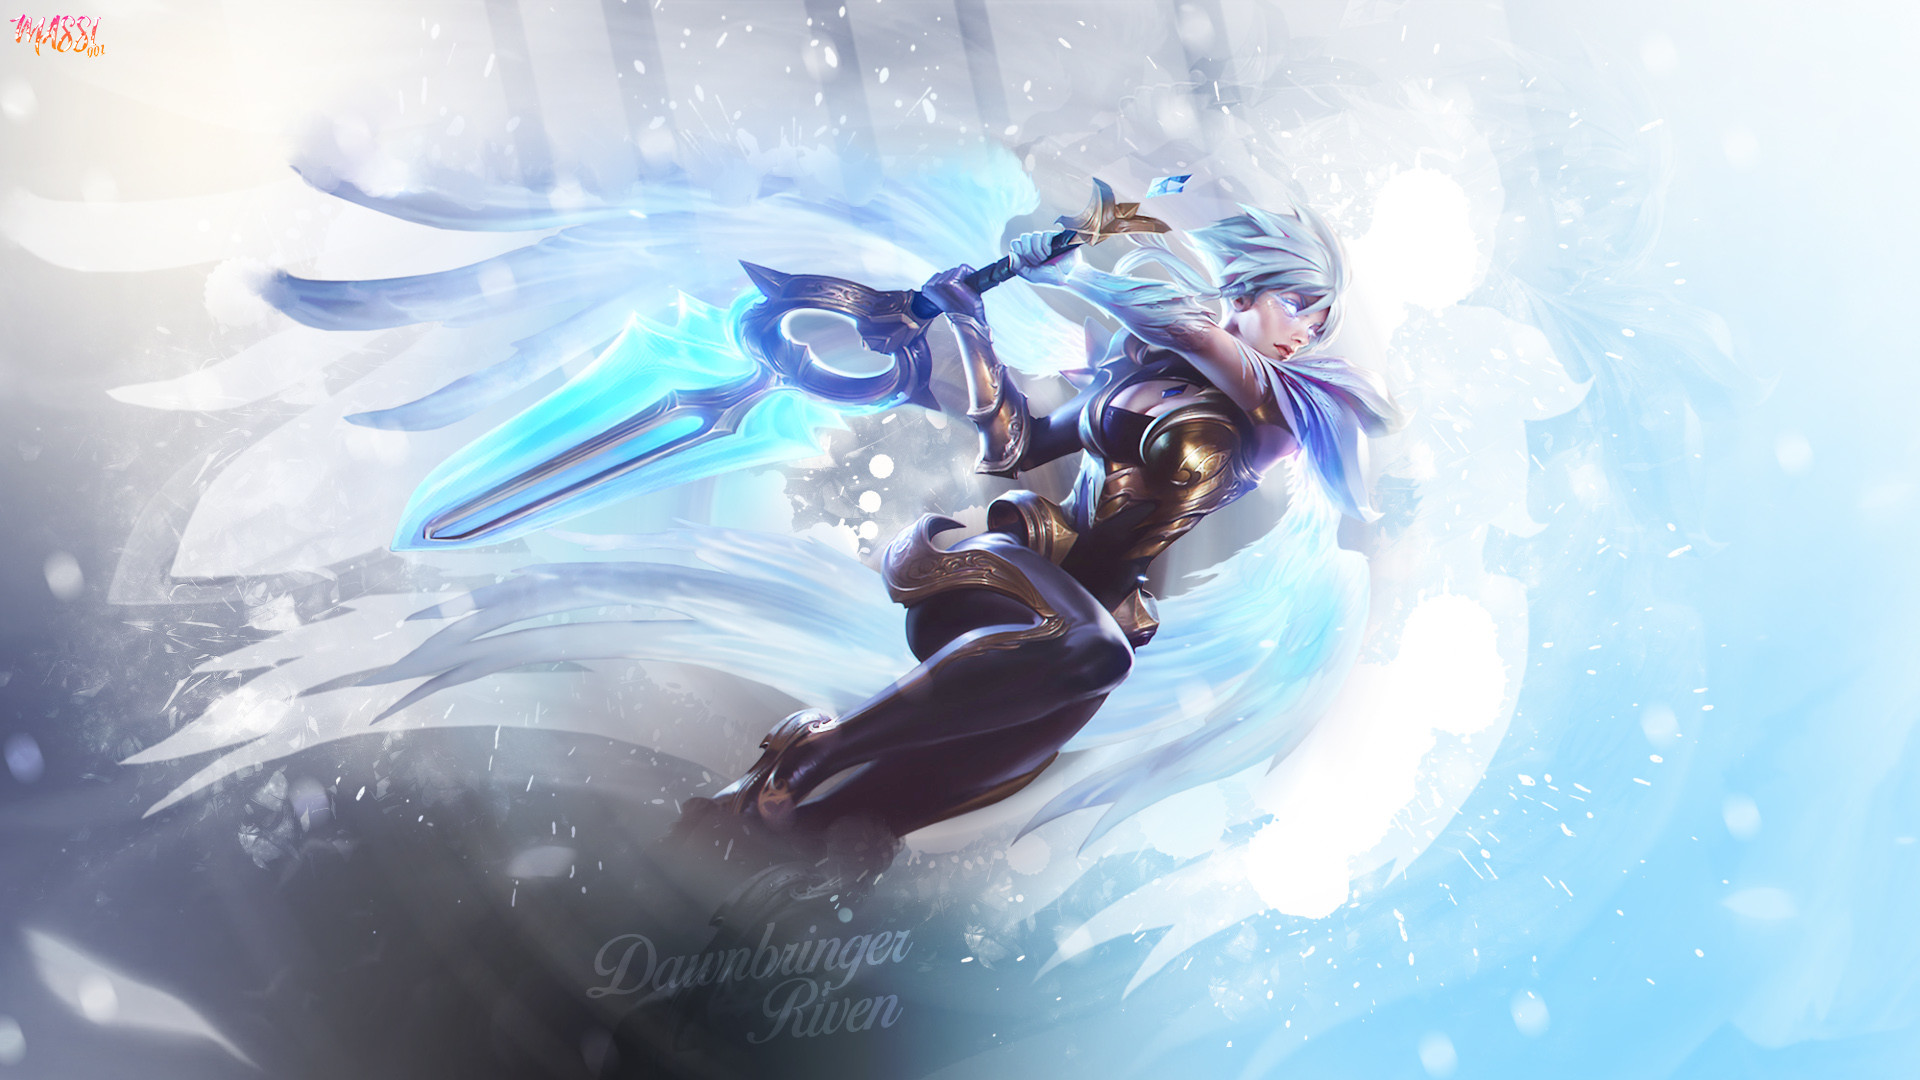 1920x1080 Dawnbringer Riven by Massi001 HD Wallpaper Background Fan Artwork League of  Legends lol